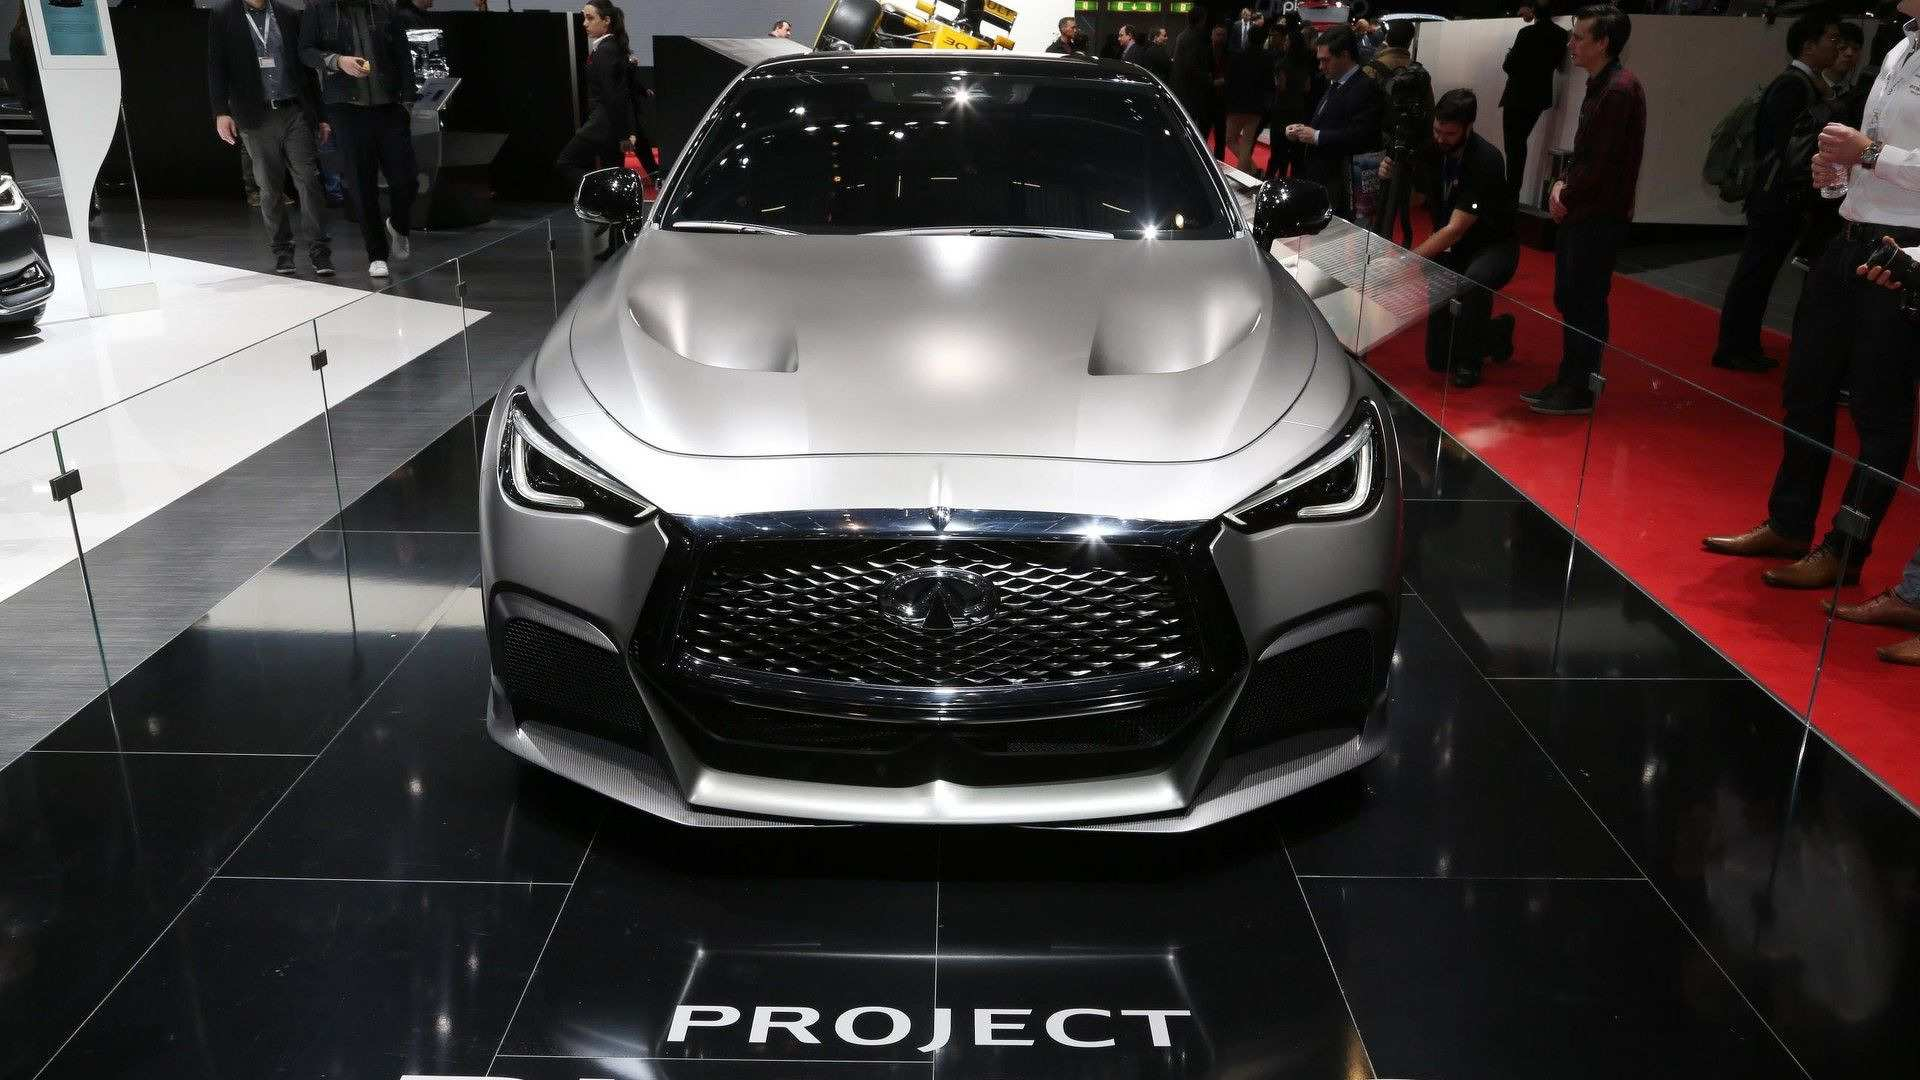 69 The Best 2020 Infiniti Q60 Coupe Wallpaper